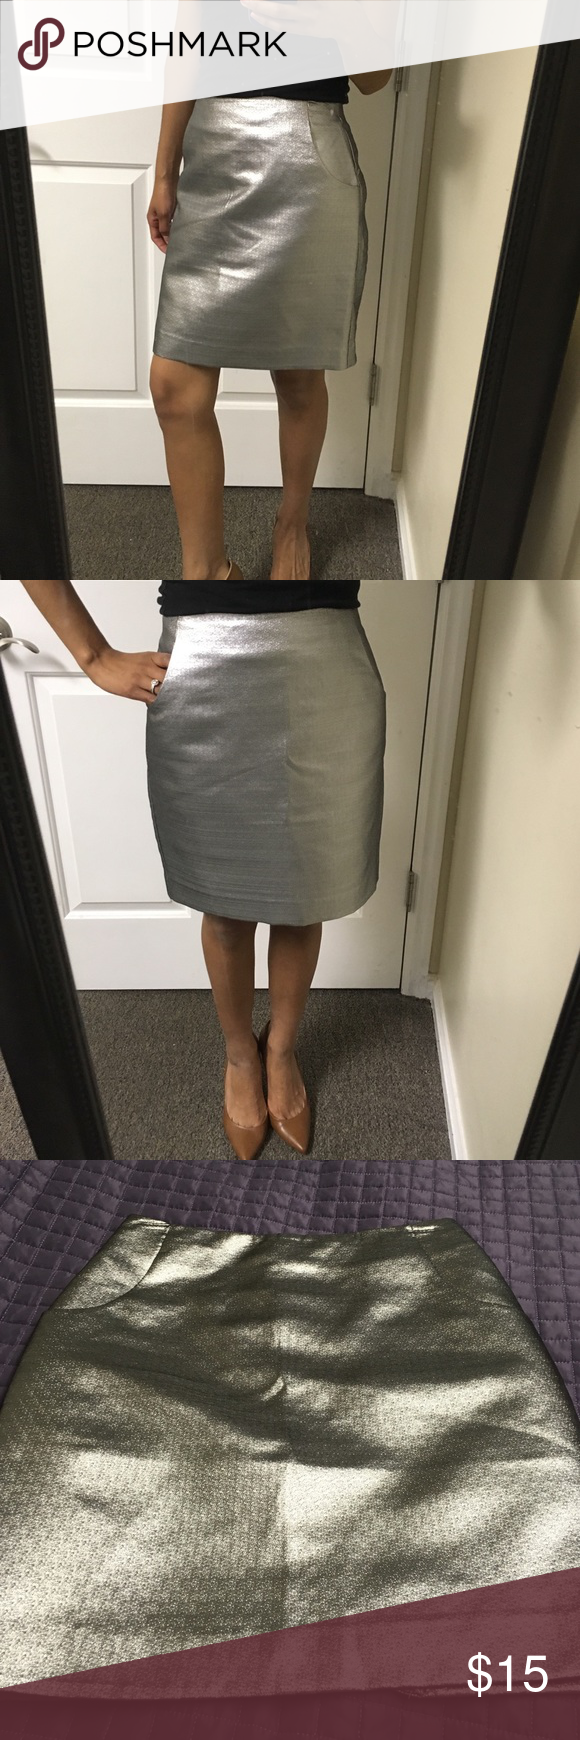 Coolest silver skirt from h&m! Great condition, very cool looking skirt :) H&M Skirts Midi